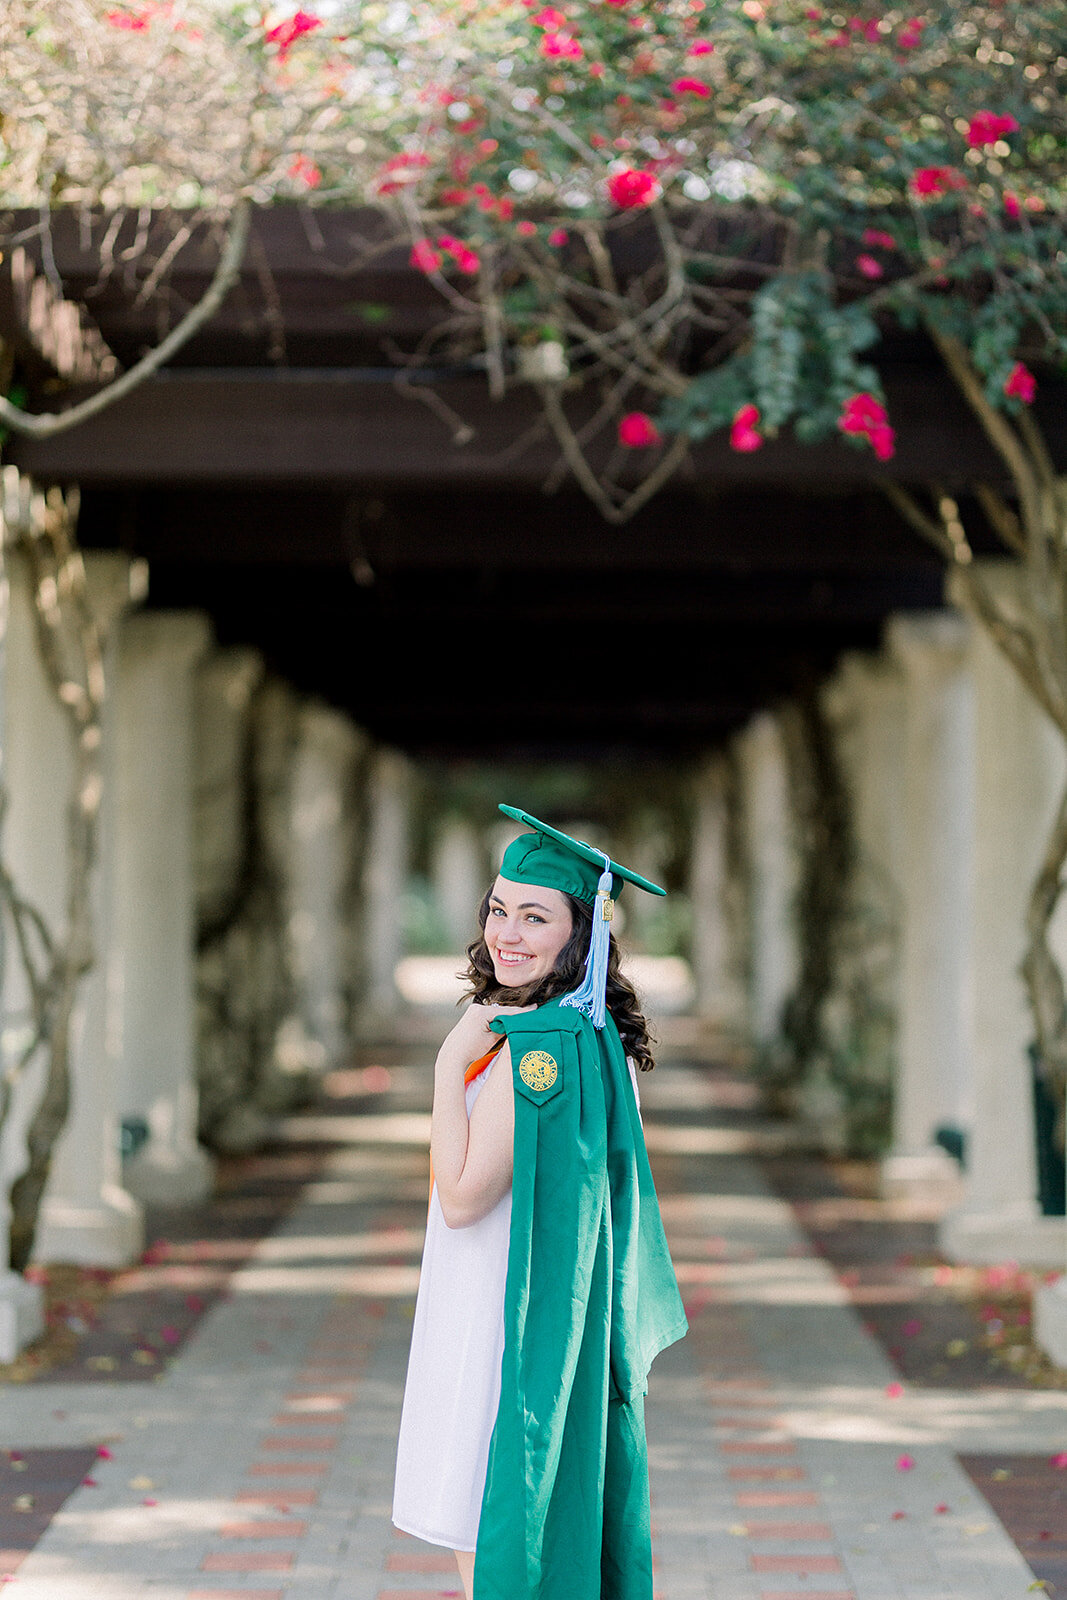 Cassidy Nathanson USF Tampa Senior Portrait Photographer Casie Marie Photography-91